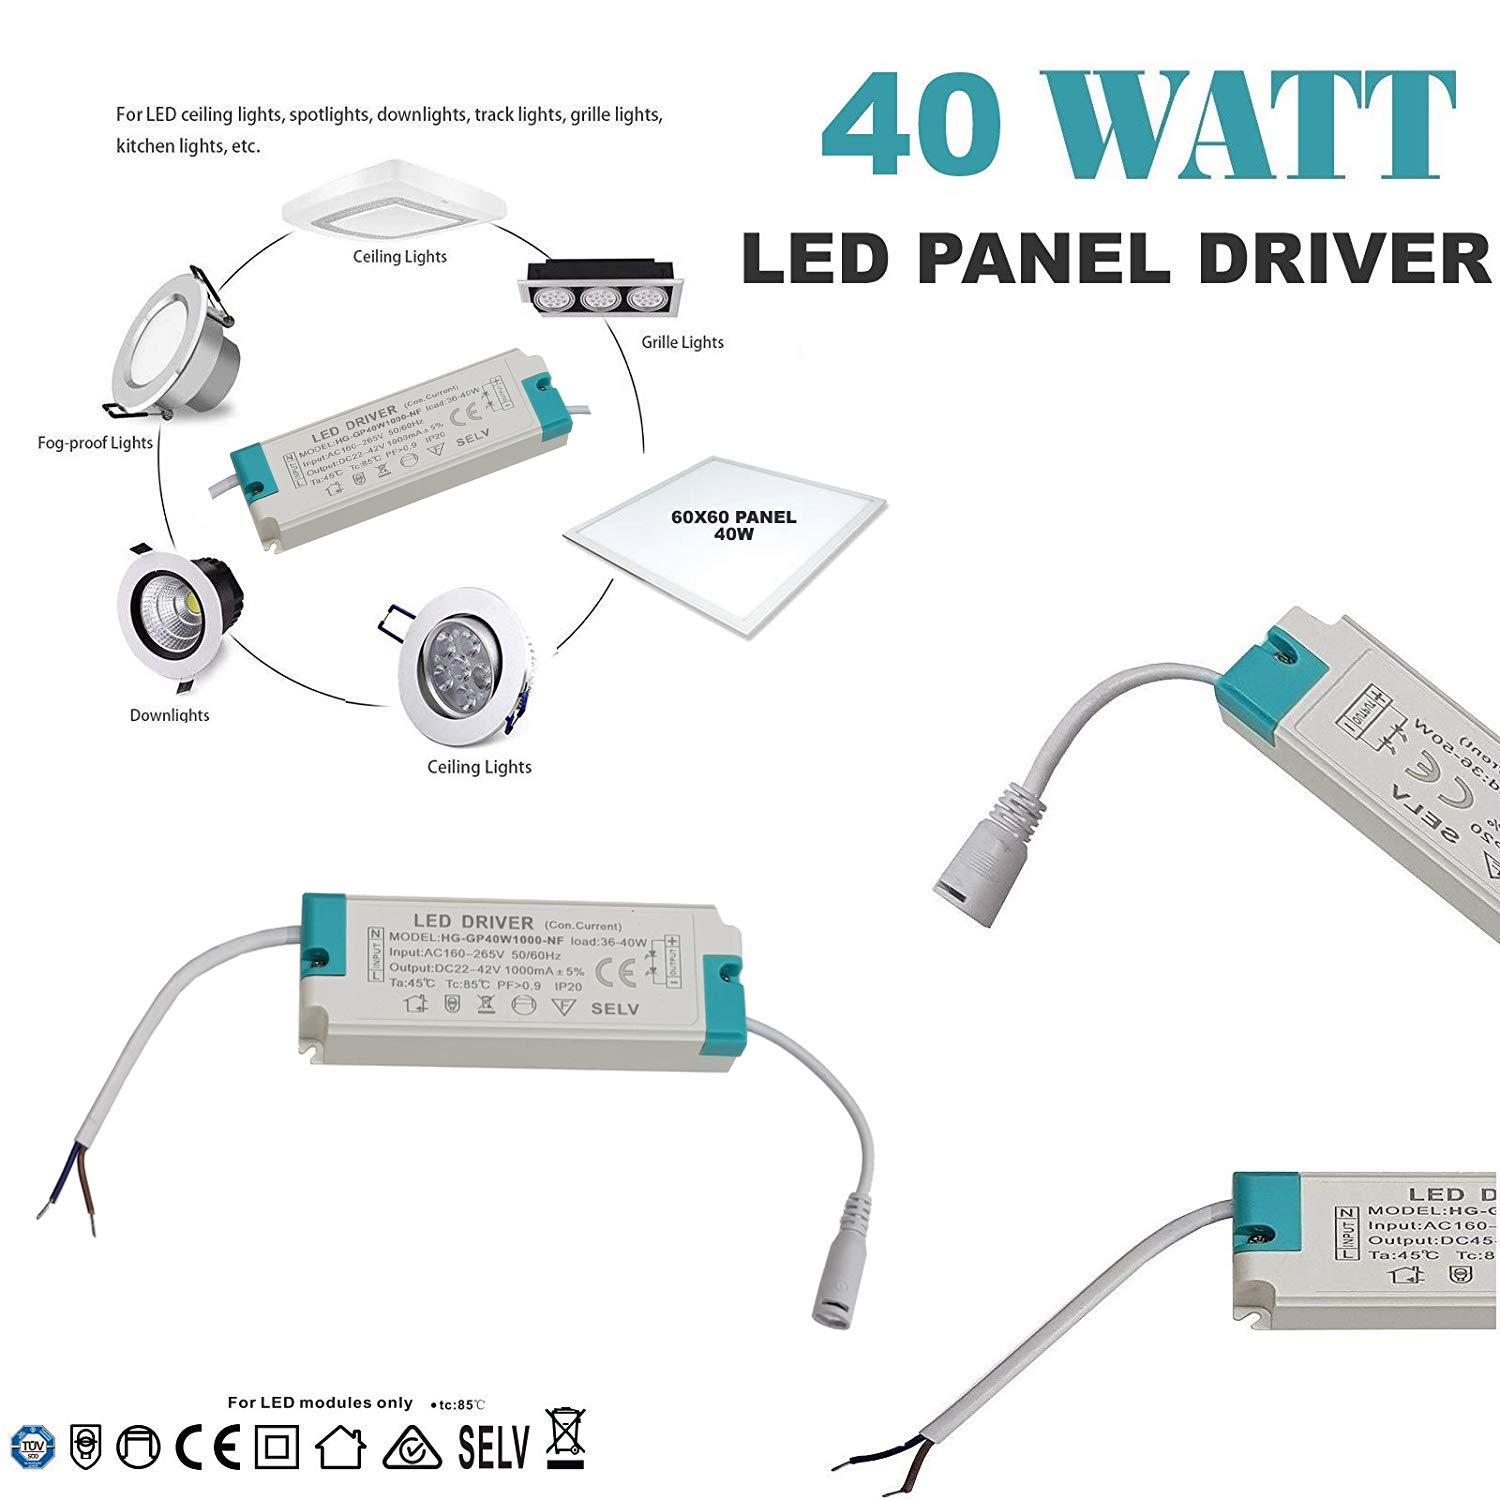 40W LED 60x60 Light Power Driver Transformer DC22-42V AC160-265V Panel Light Power Supply 60x60 LED Panel Light Transformer Driver Delled